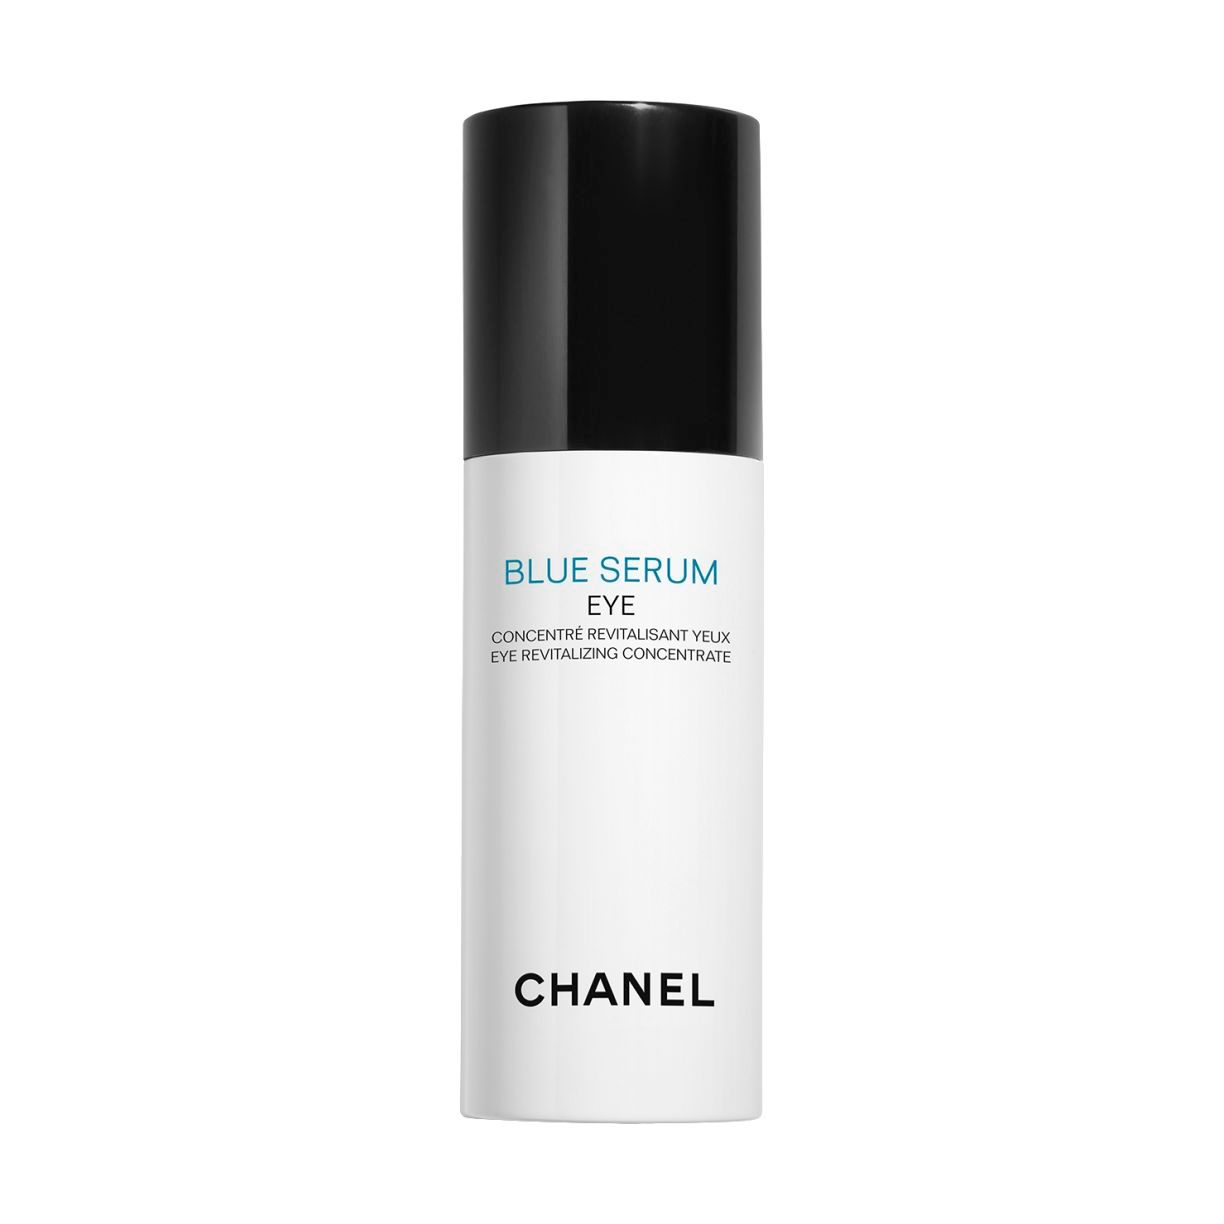 BLUE SERUM EYE INGREDIENTES DE LONGEVIDAD CONSUMIDOS EN LAS ZONAS AZULES 15ml